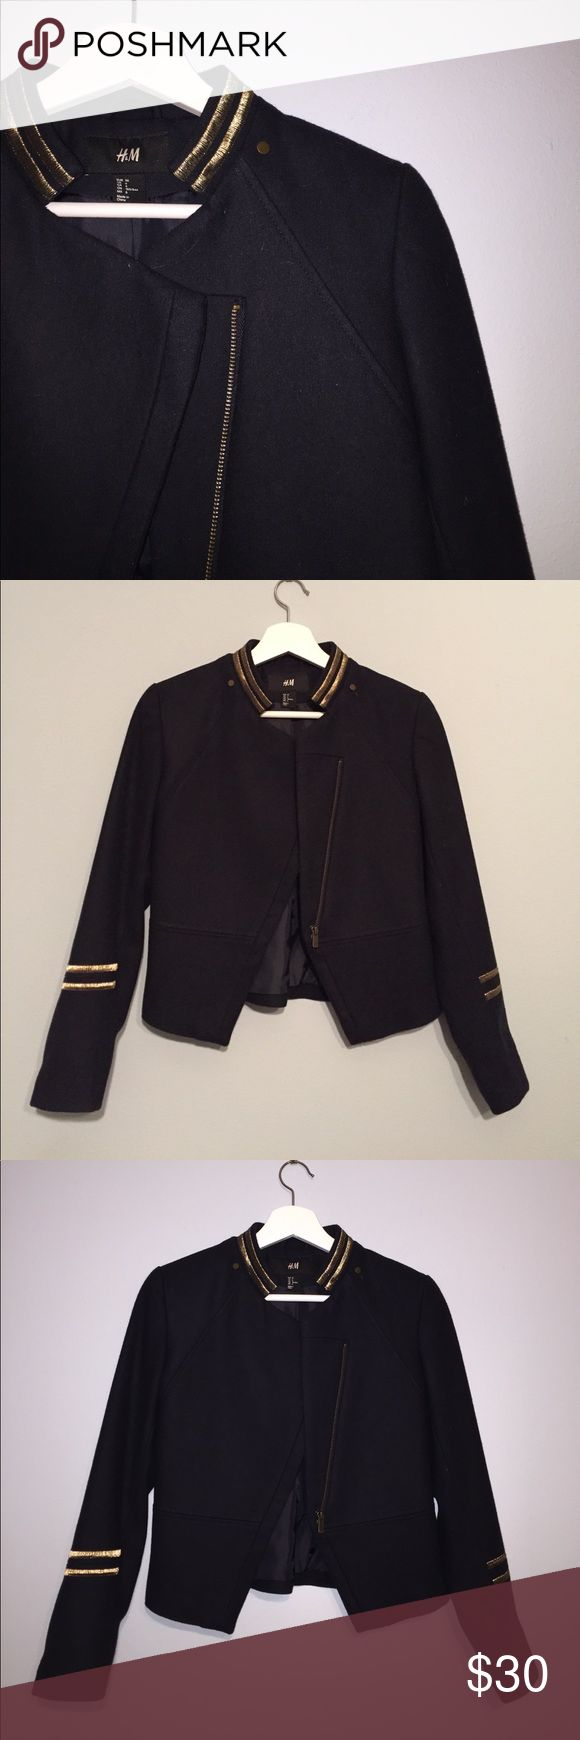 H&M Military Inspired Jacket This gold and navy zip up military inspired jacket by H&M is incredible. Lines and structure for days! It's equal parts casual and commanding. Wear this over a sweet little dress or use it to finish off a boot/jean outfit. Sz 6. Fits like a small/med. H&M Jackets & Coats